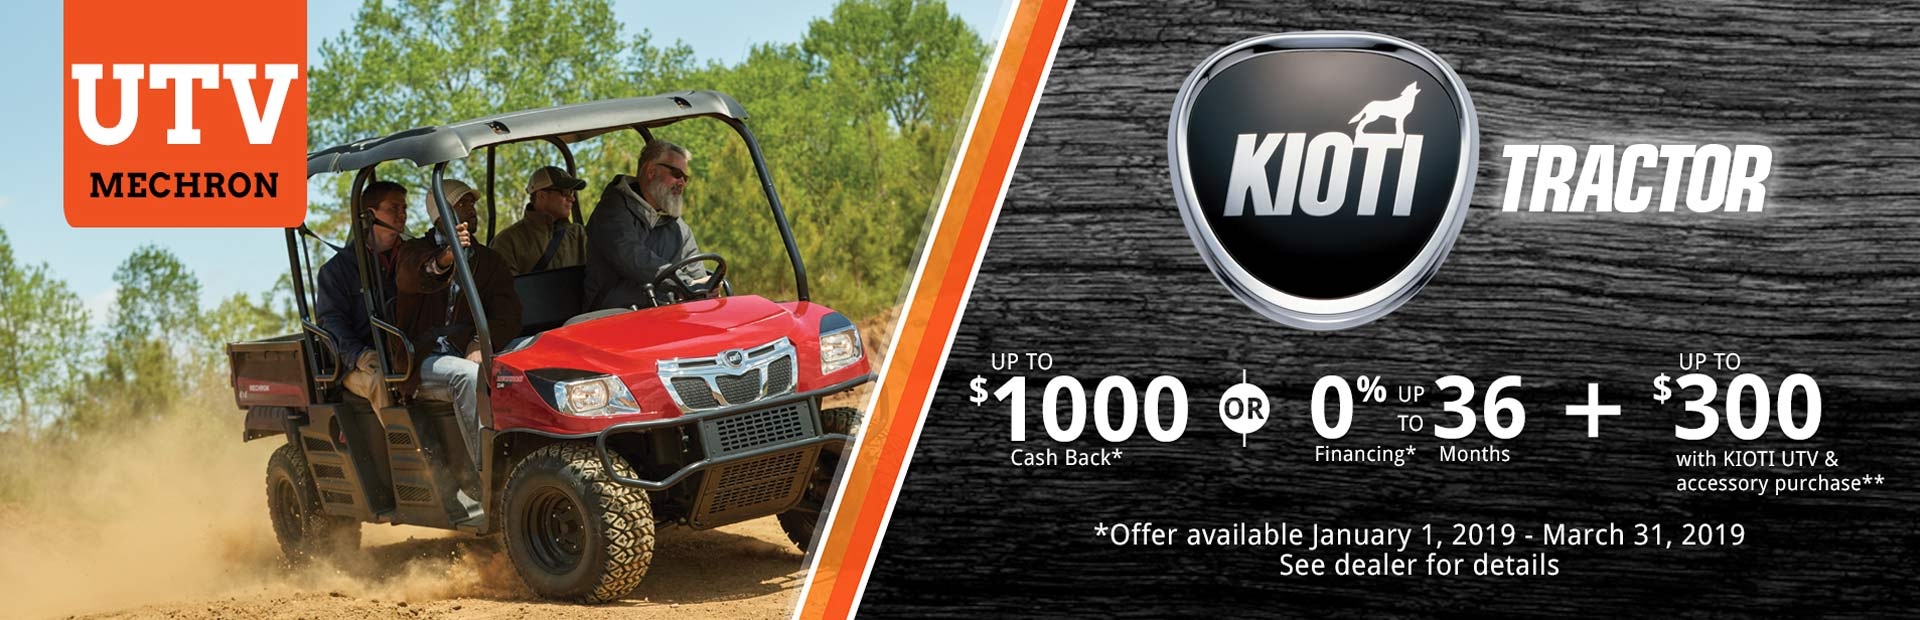 KIOTI: Gear Up for Savings Accessory Rebate